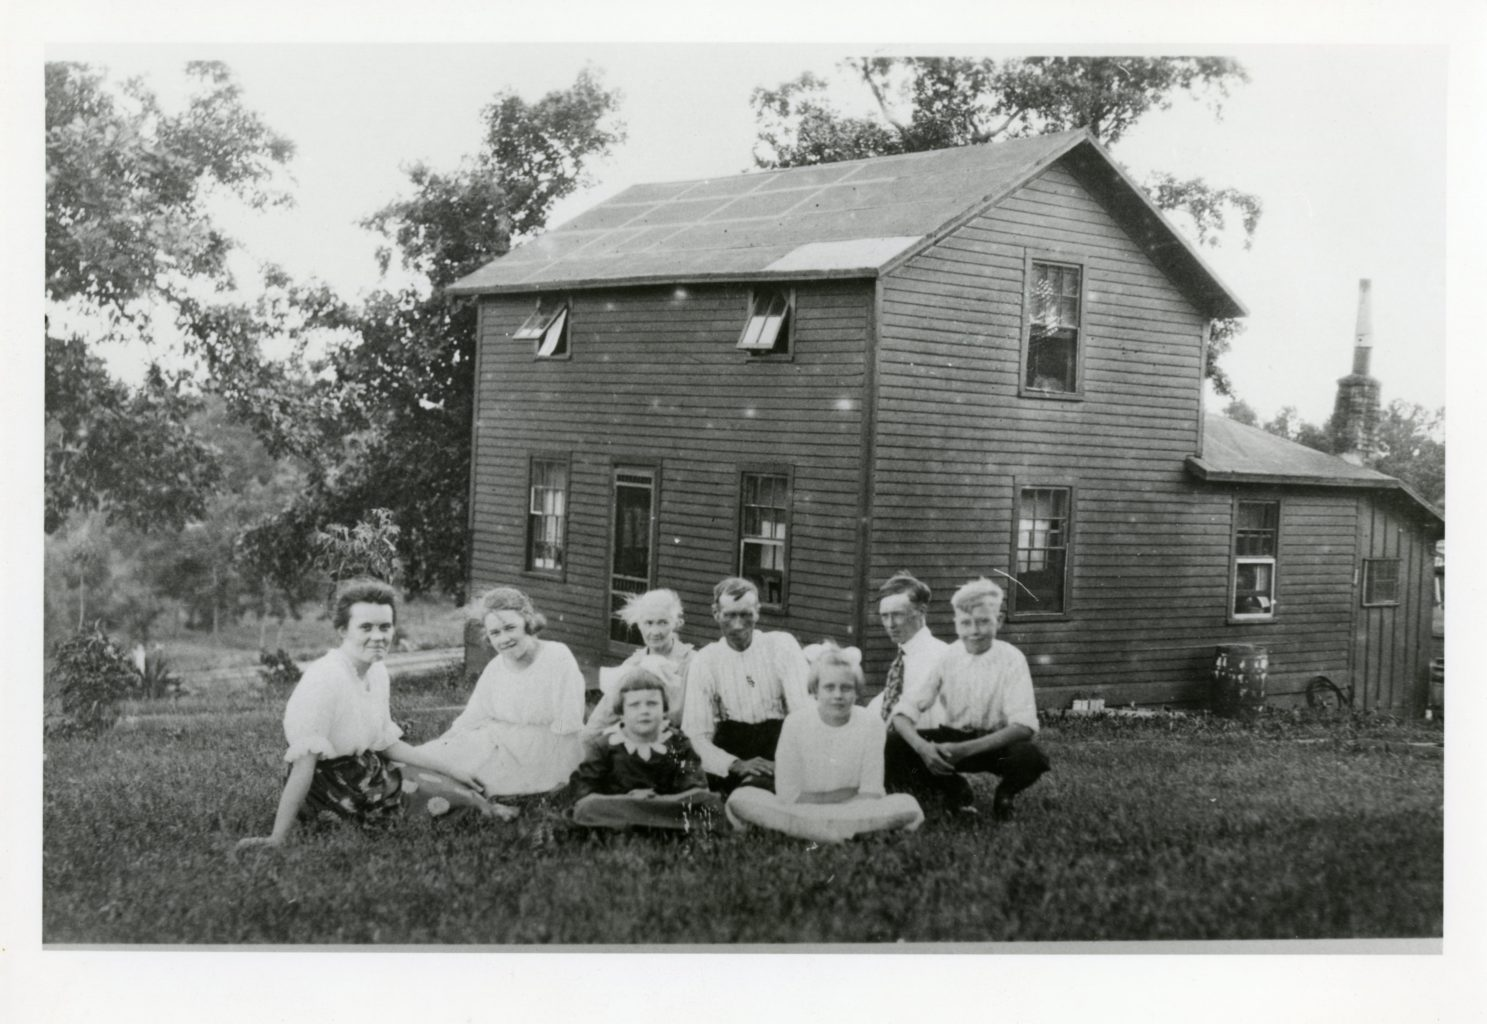 A small family sits outside of their house on the ground.